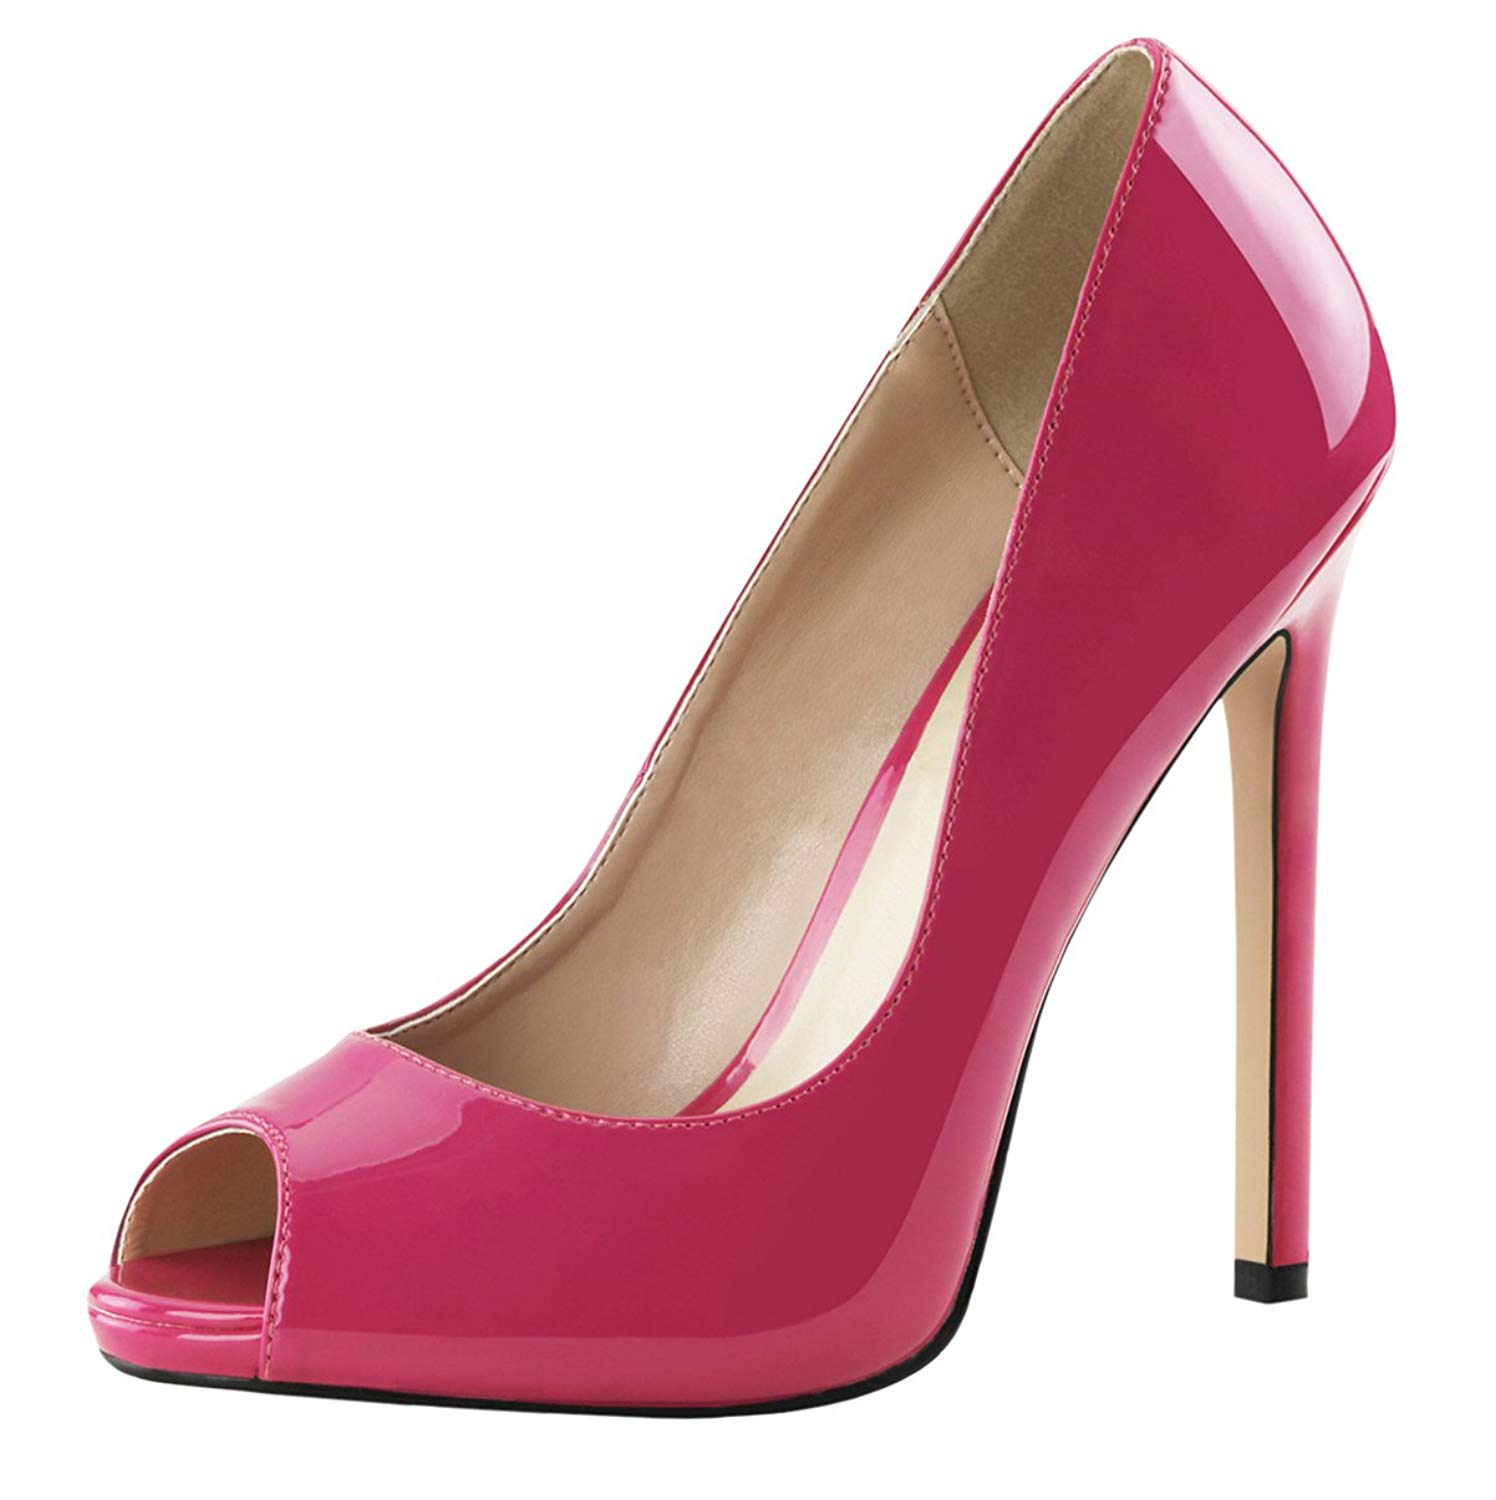 bd418e6b9208 Get Quotations · Summitfashions Womens Peep Toe Pumps Patent Hot Pink Shoes  Platforms Stilettos 5 inch Heels